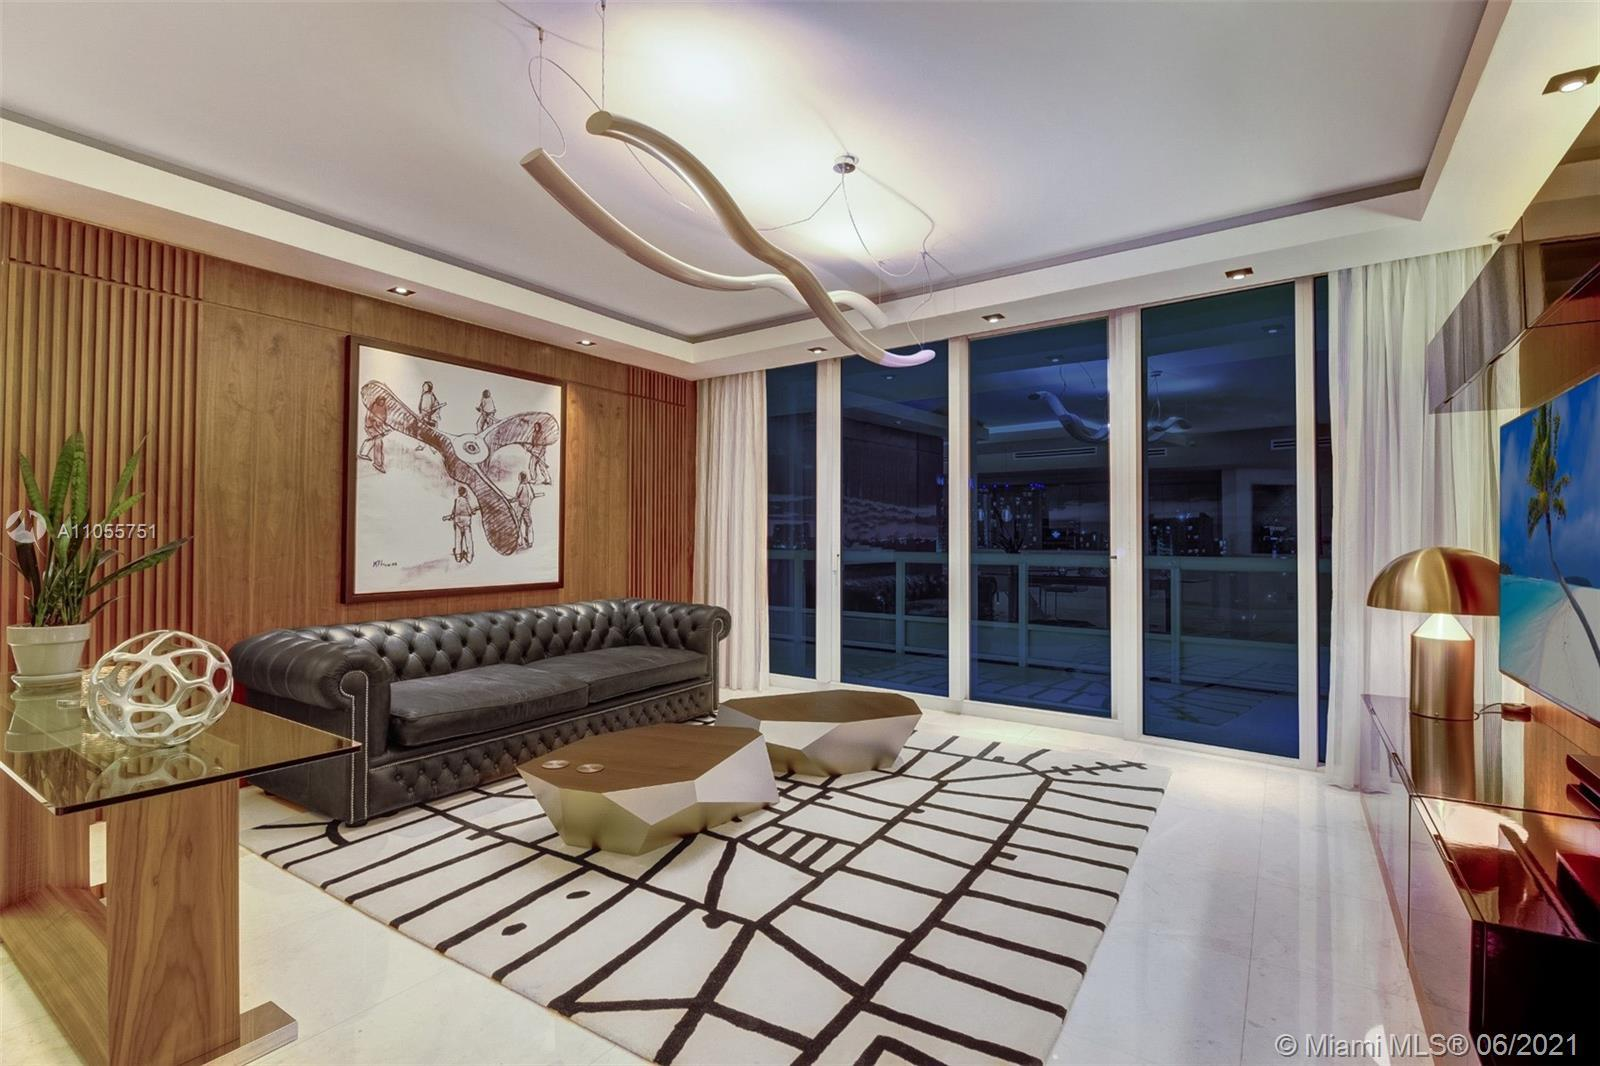 STUNNING COMPLETELY REMODELED RESIDENCE CONVERTED INTO 3 BEDROOMS AND 2½ BATHROOMS. PRIVATE ELEVATOR